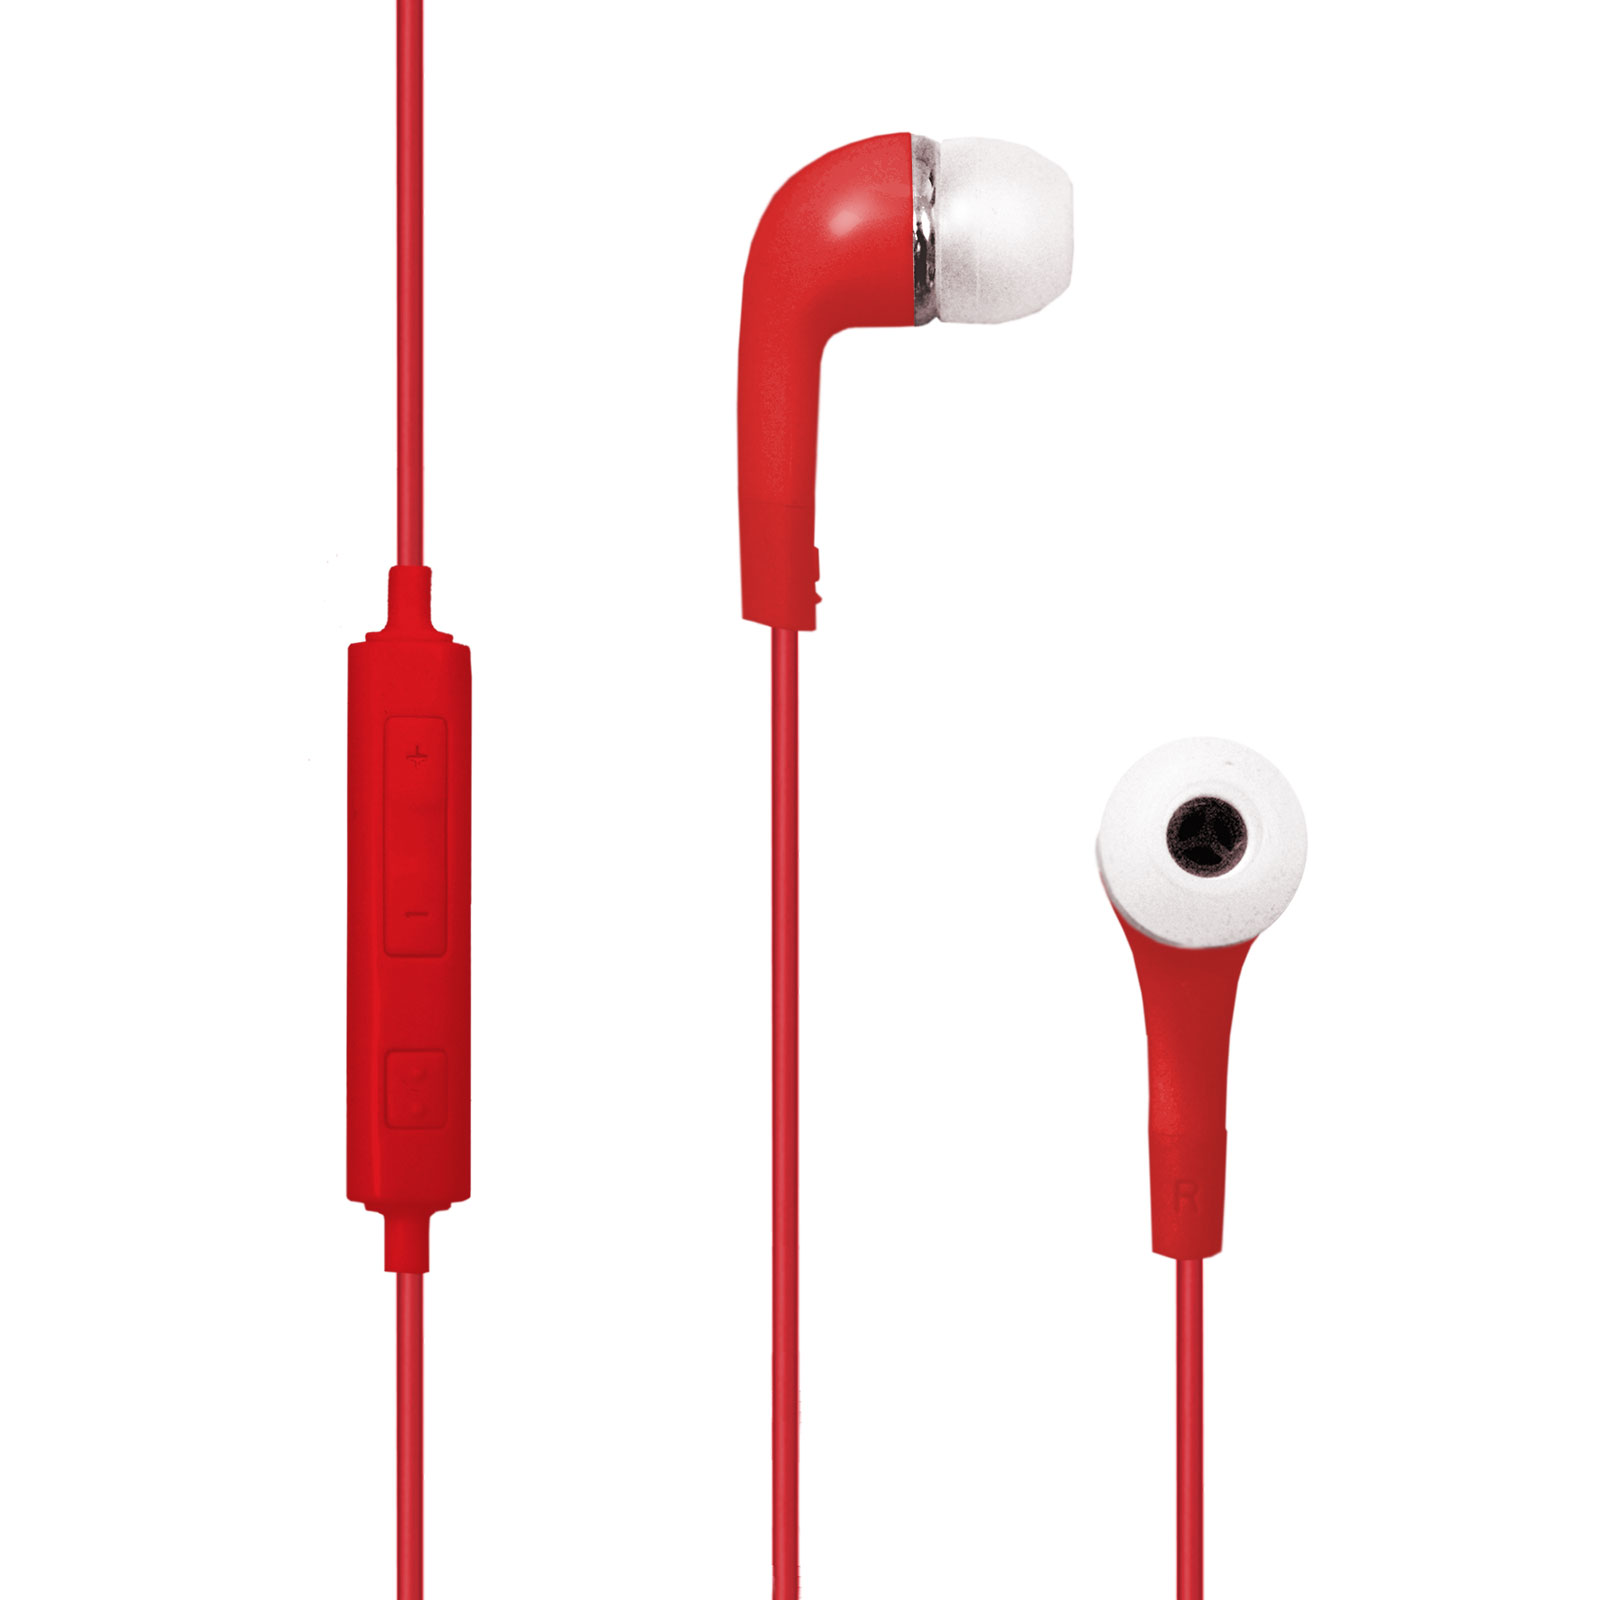 Earbuds microphone volume control - earbuds with microphone red